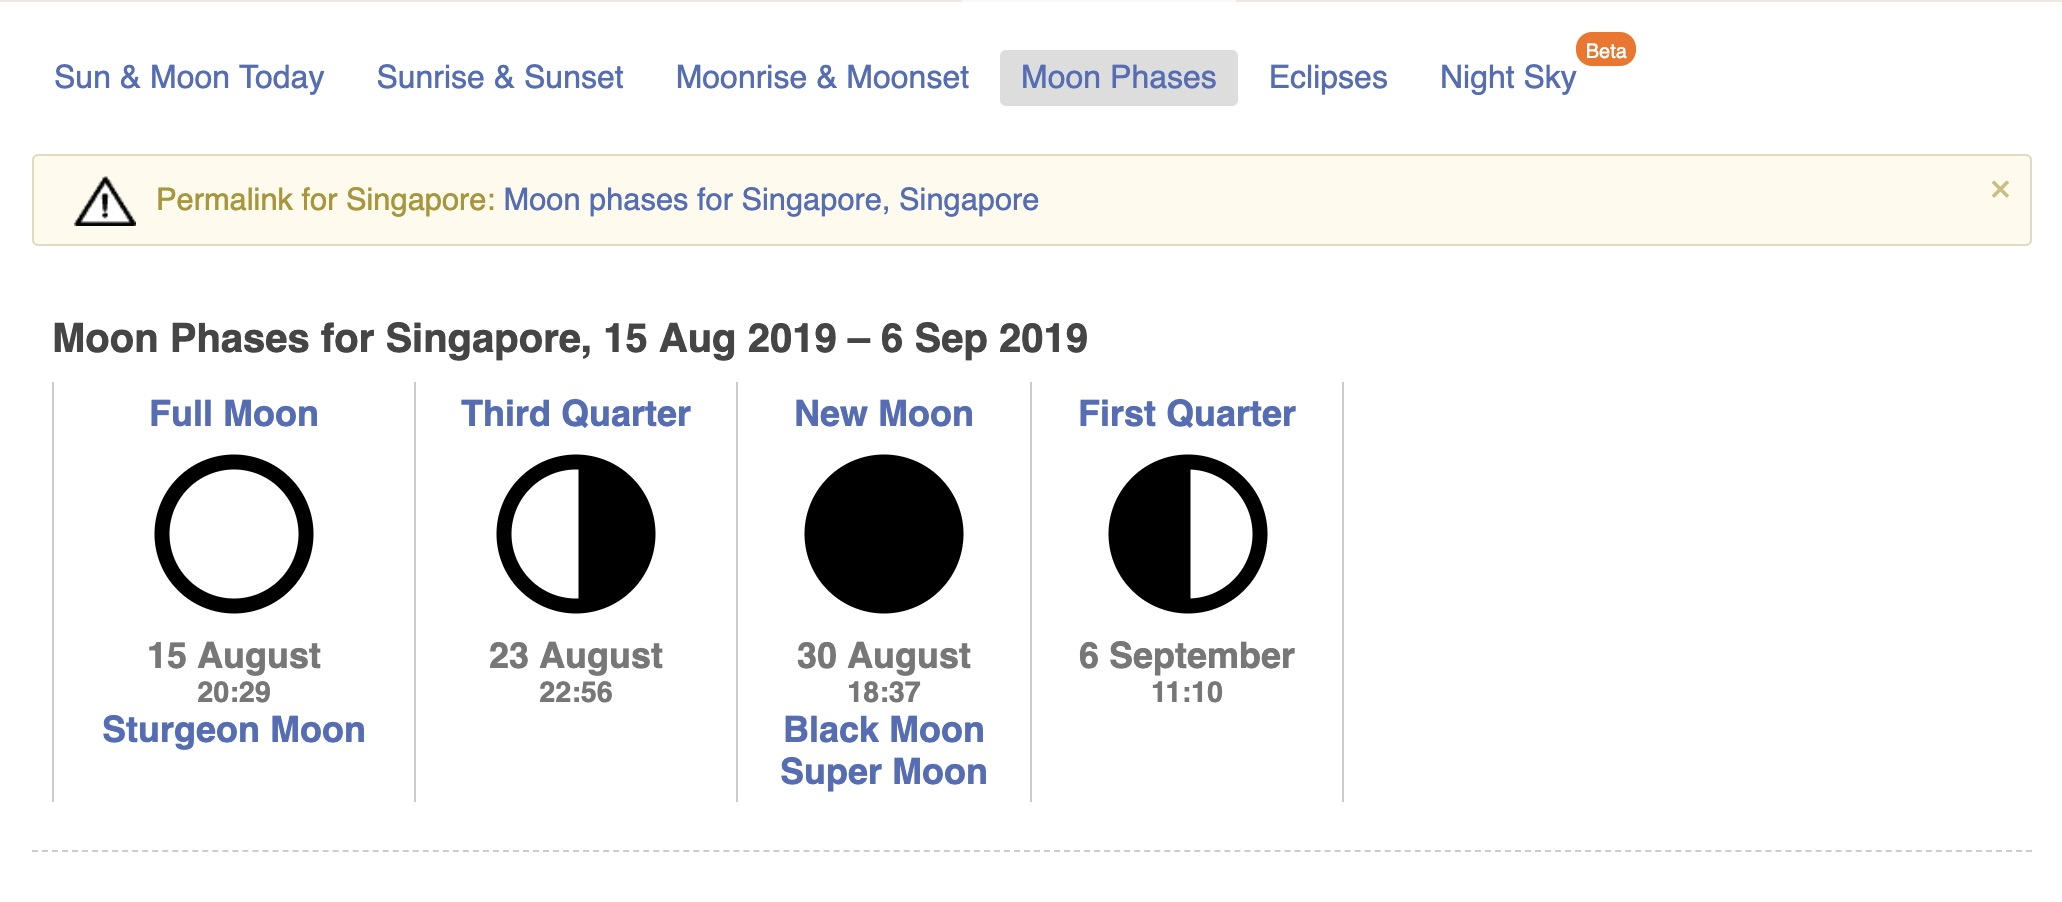 The lunar calendar shows the moon phases and the dates. In this instance, 30 August 2019 would be best to see the stars as it is a new moon.